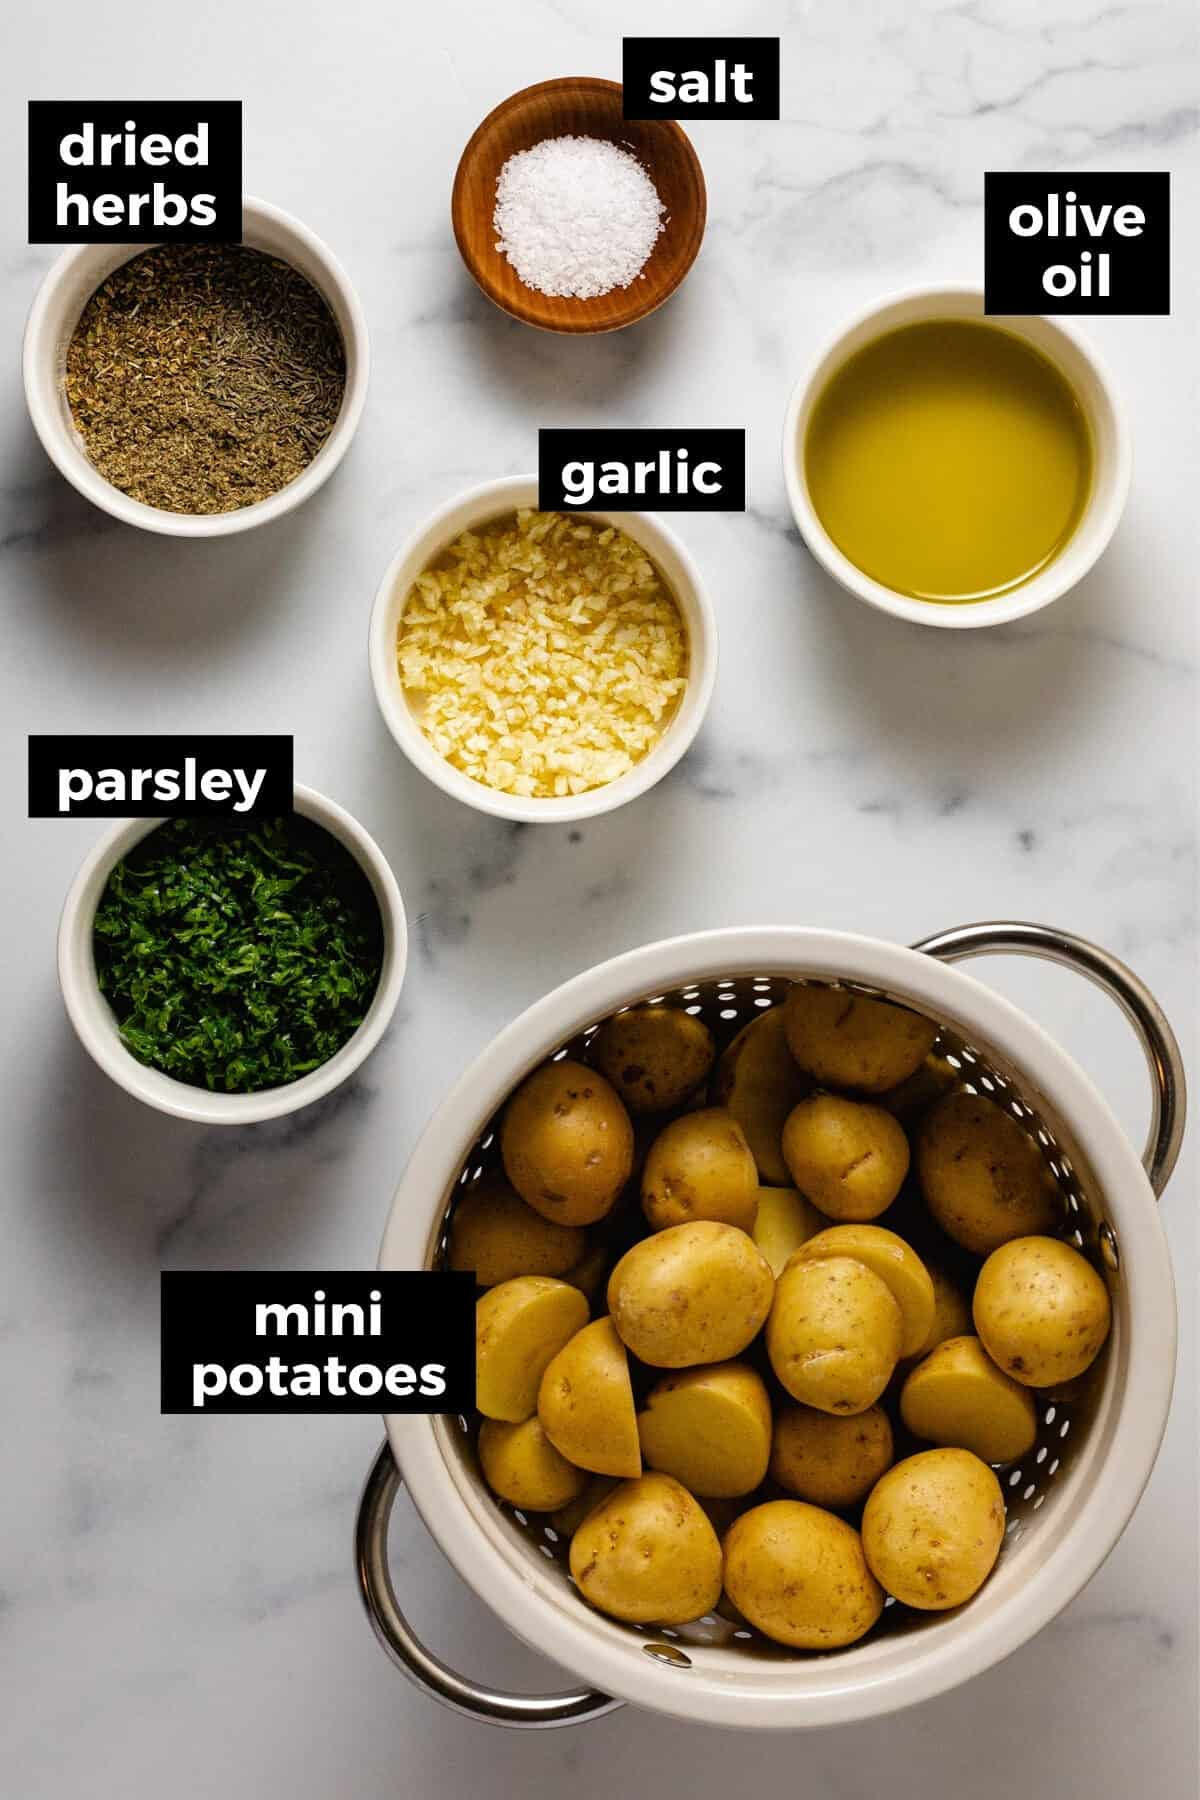 White marble counter top with ingredients to make roasted potatoes